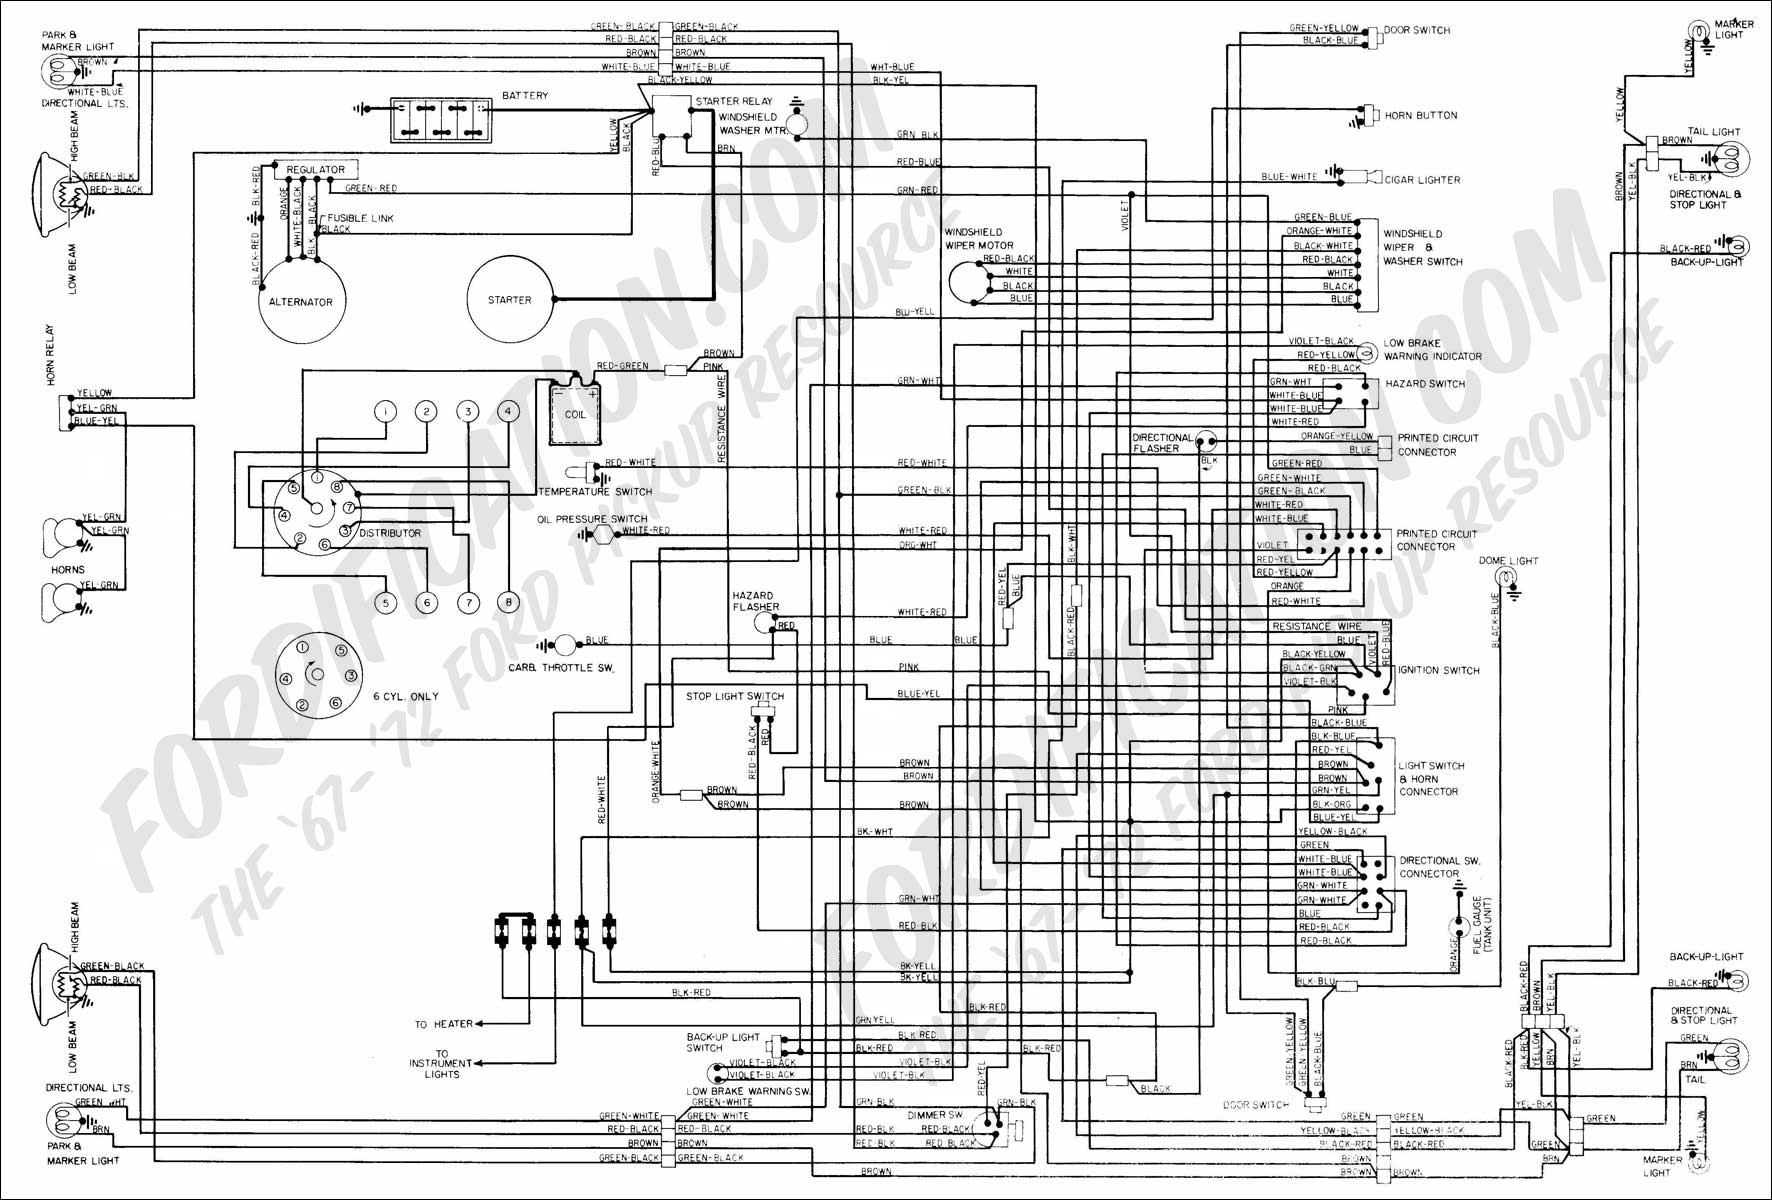 1970 Dodge Challenger Alternator Wiring Library 1974 Diagram Ford Truck Technical Drawings And Schematics Section H Rh Fordification Com 2006 F